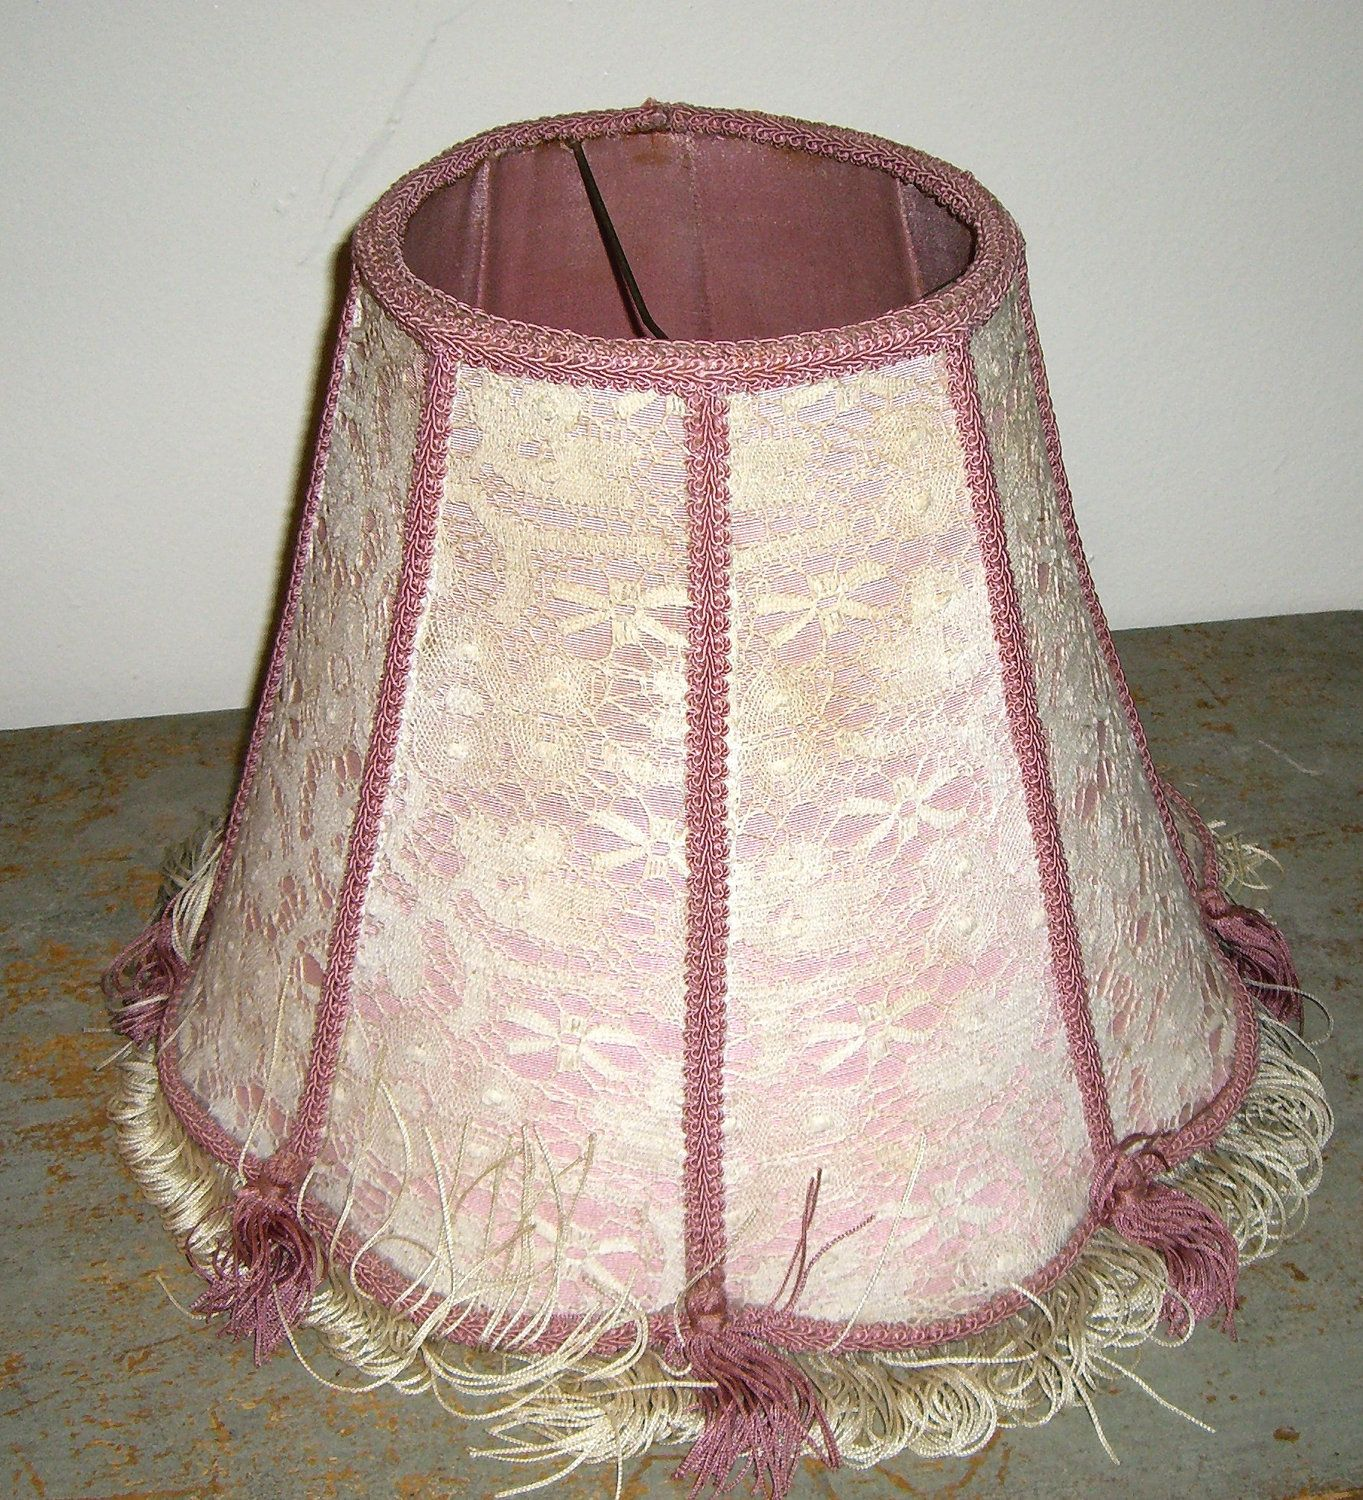 Vintage Lamp Shade Pink Lace 1940 S Shabby Pink Lamp Etsy Antique Lamp Shades Pink Lamp Shade Vintage Lamps